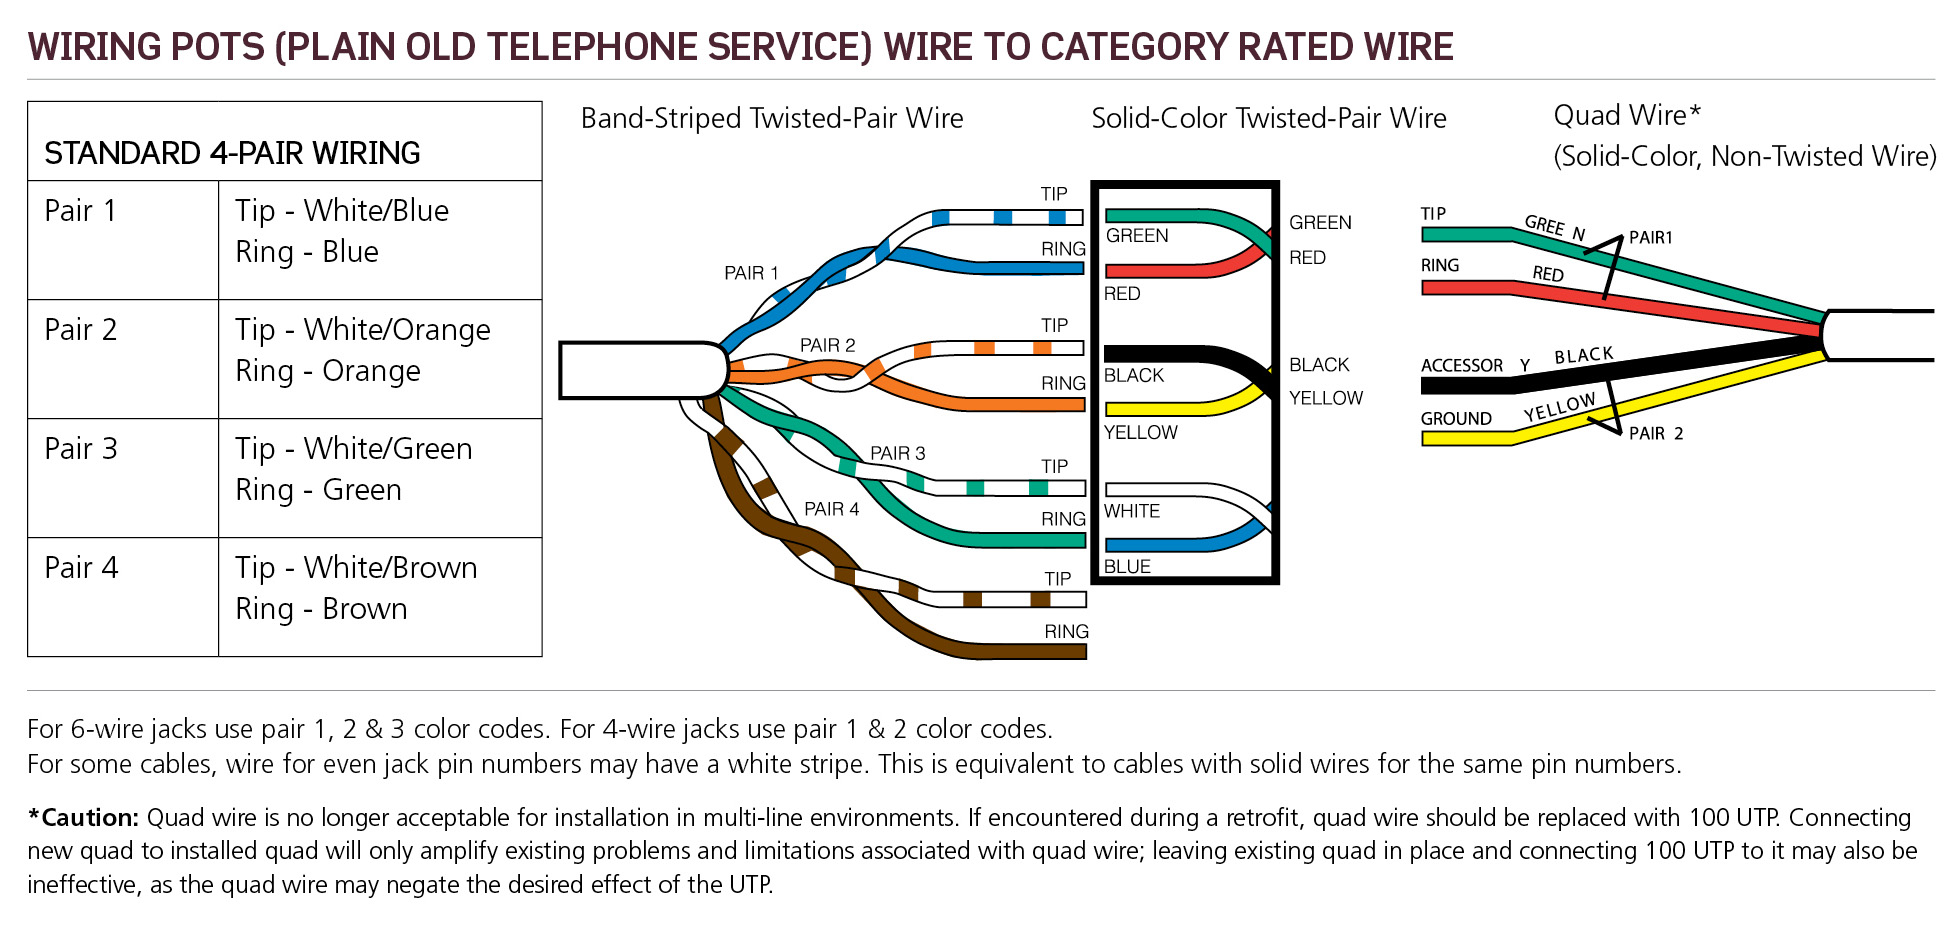 pots plain old telephone service wiring leviton made easy blog are you staring at some wire [ 1960 x 936 Pixel ]